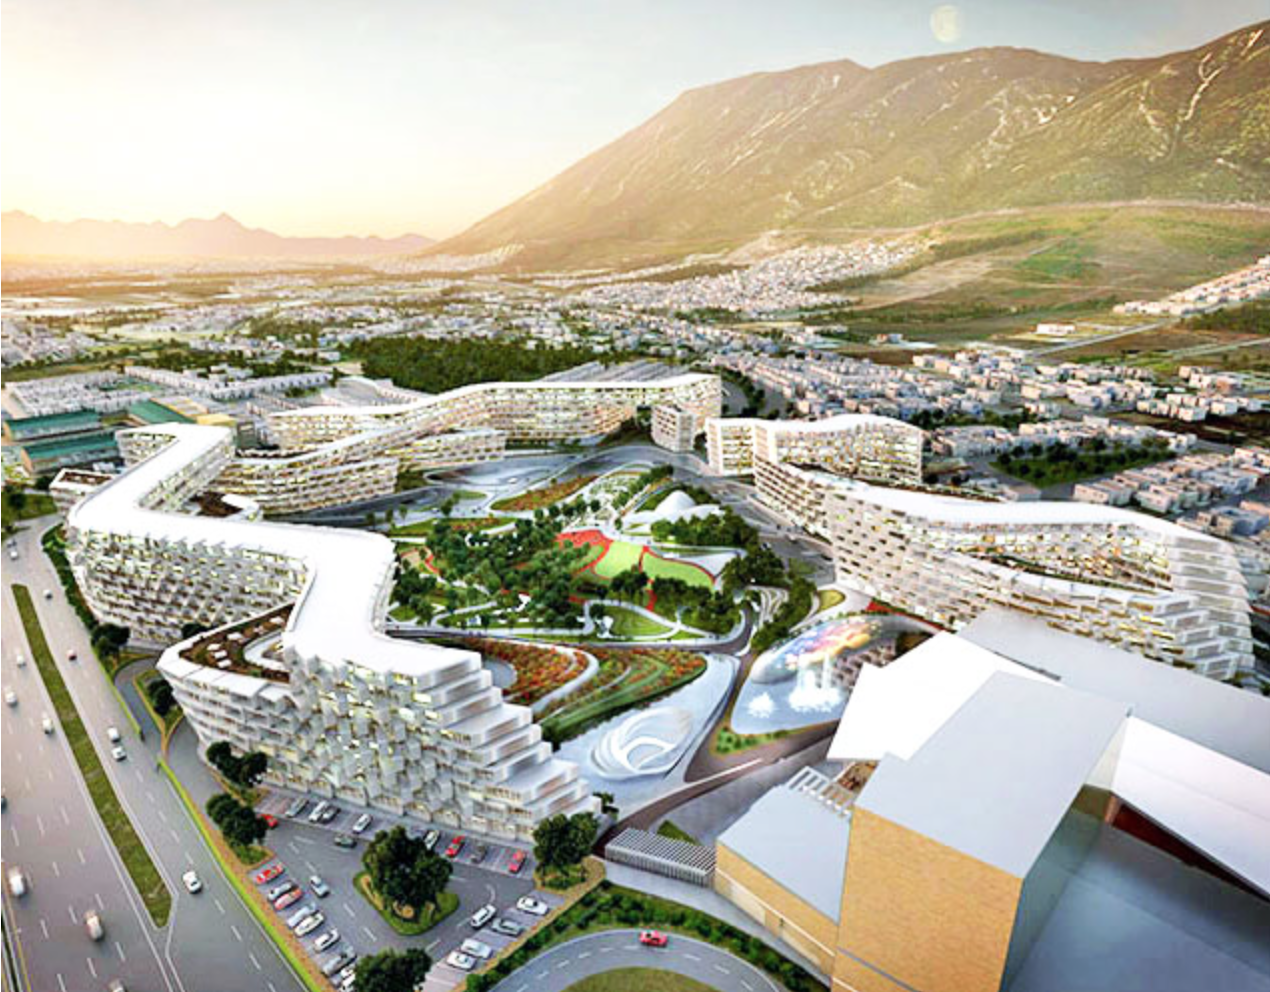 Esfera City Center is a honeycomb-styled, energy-efficient complex that uses the surrounding environment to reduce solar gain and capture prevailing winds.